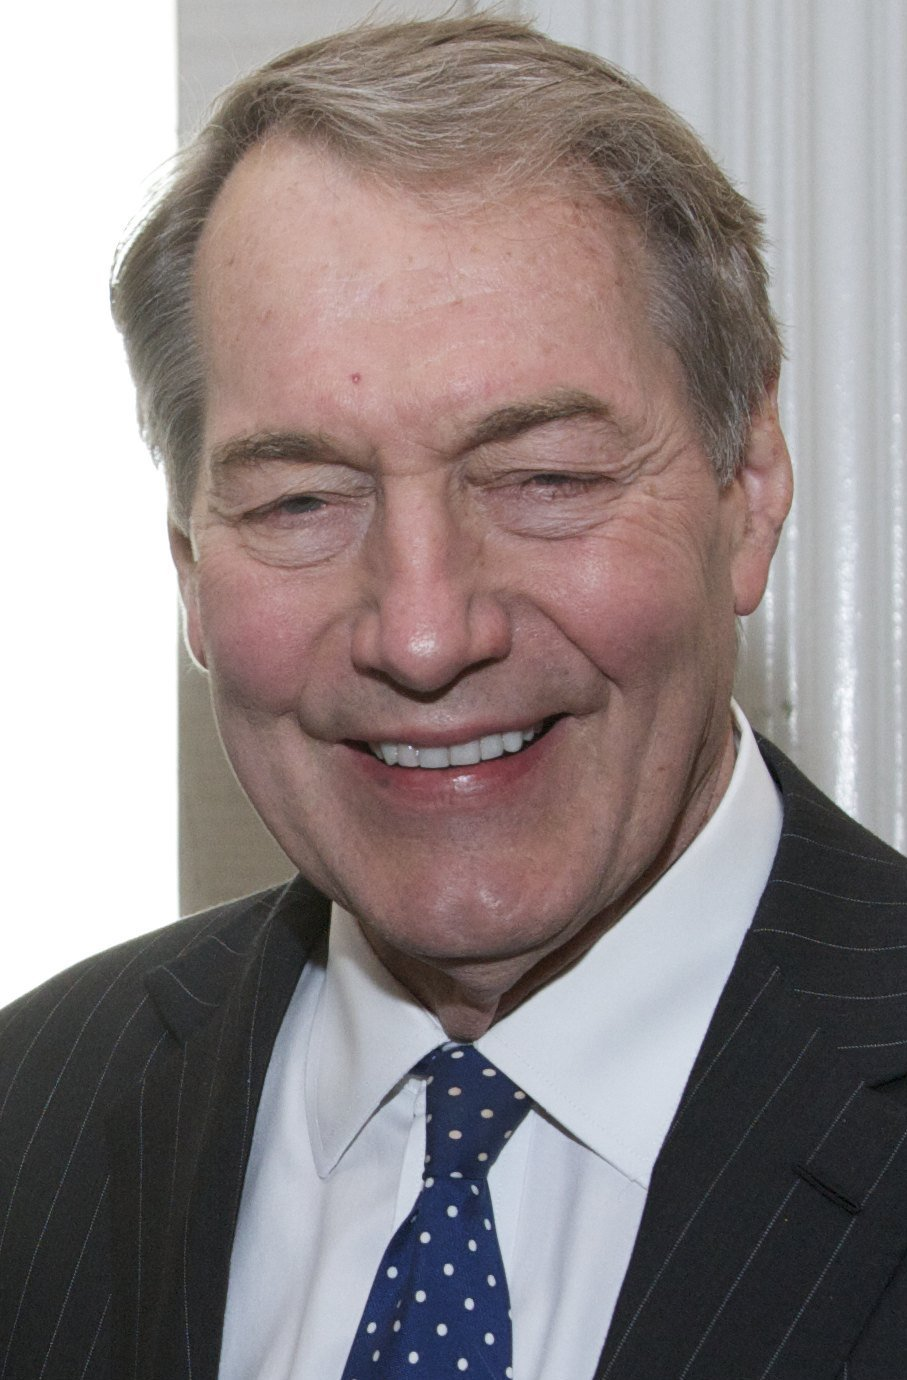 Charlie Rose at the 73rd Annual Peabody Awards. May, 2014. | Photo: Wikimedia Commons Images